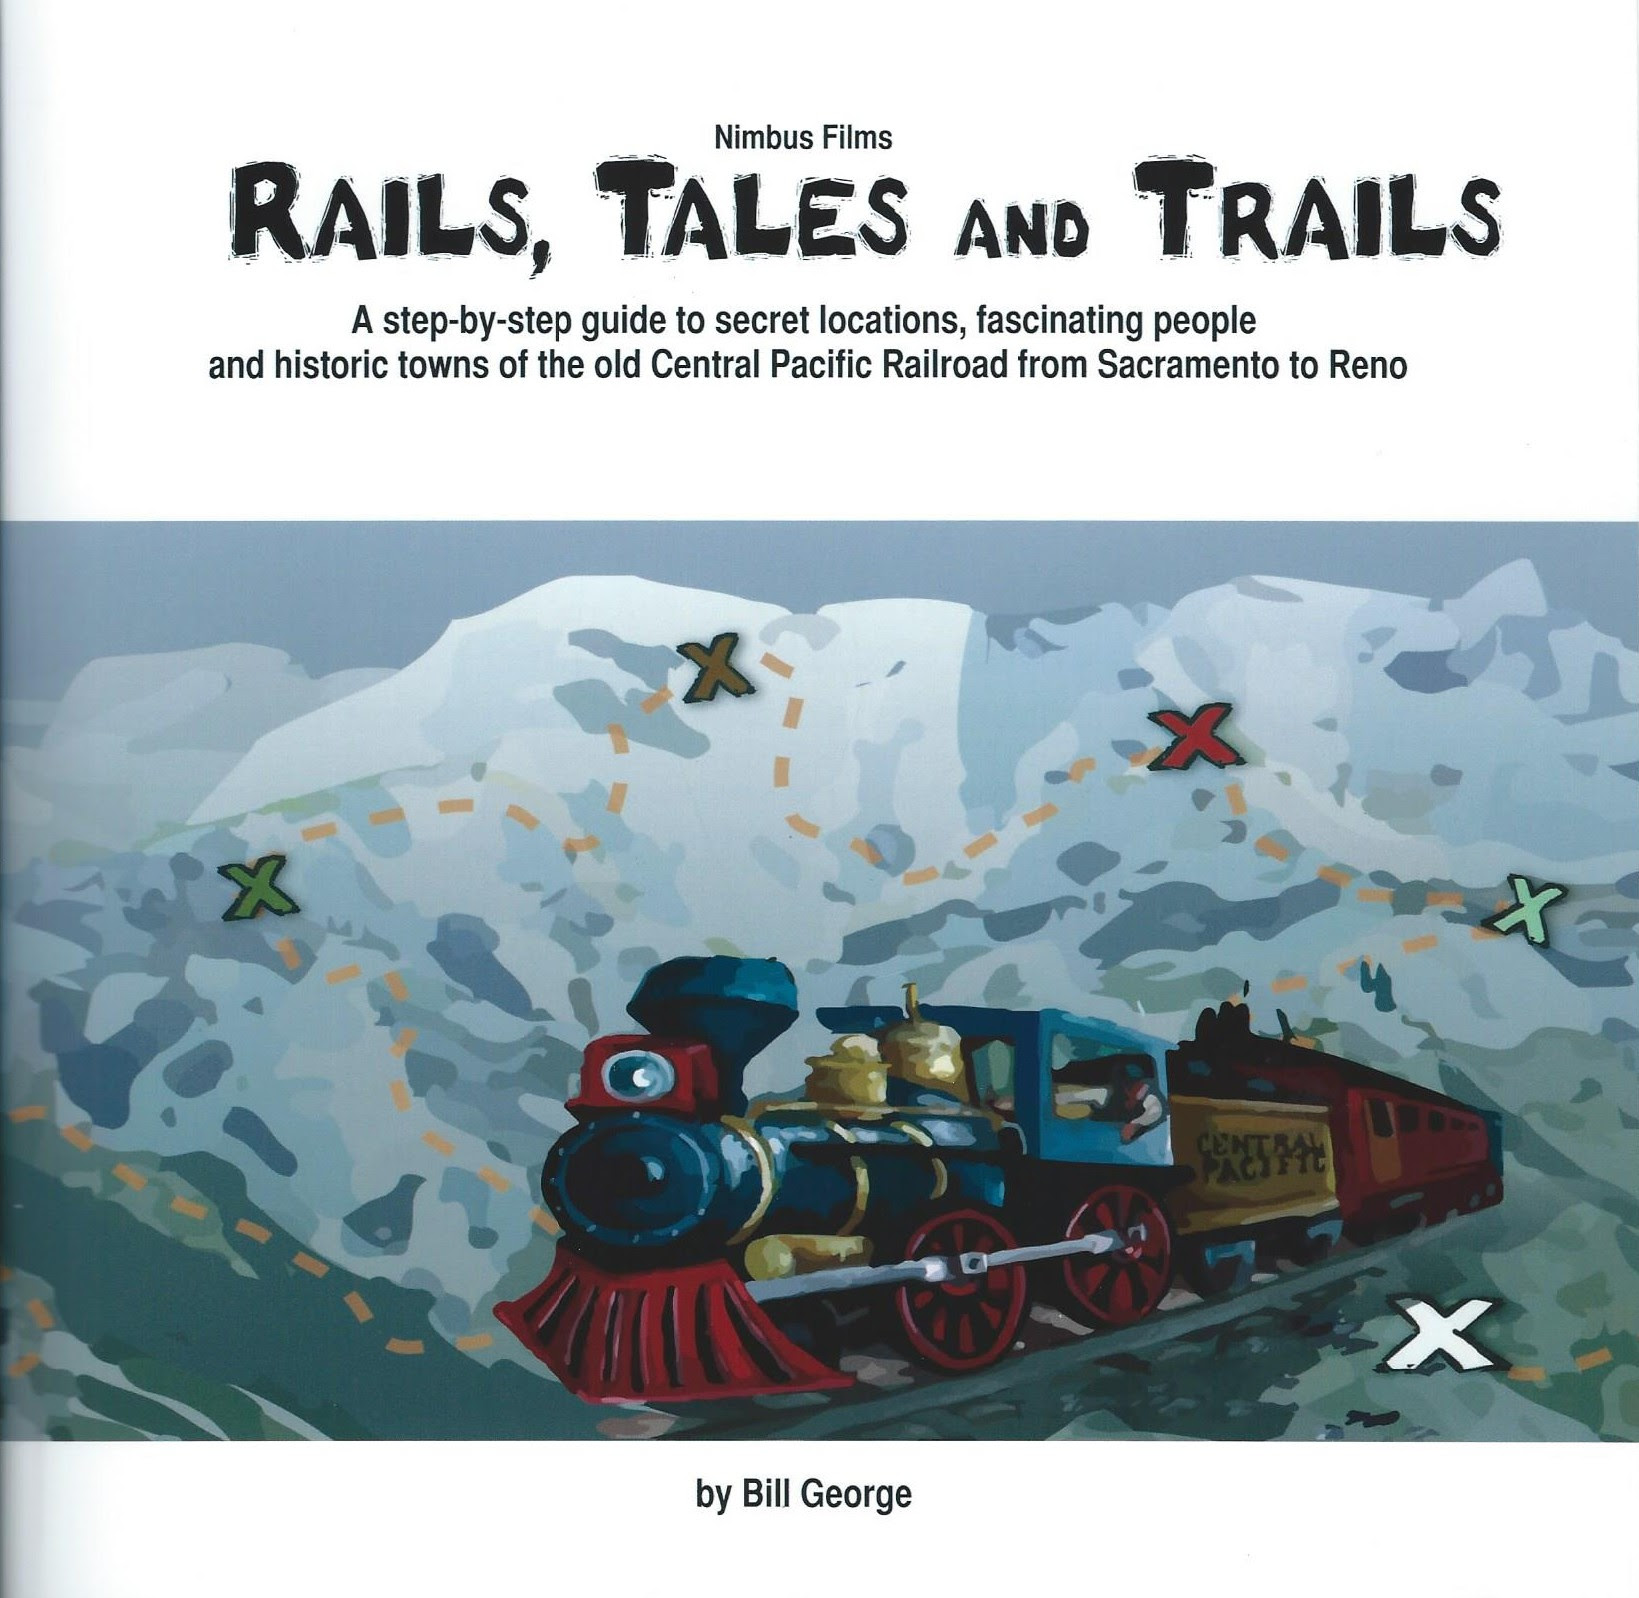 'Rails, Tales and Trails' by Bill George